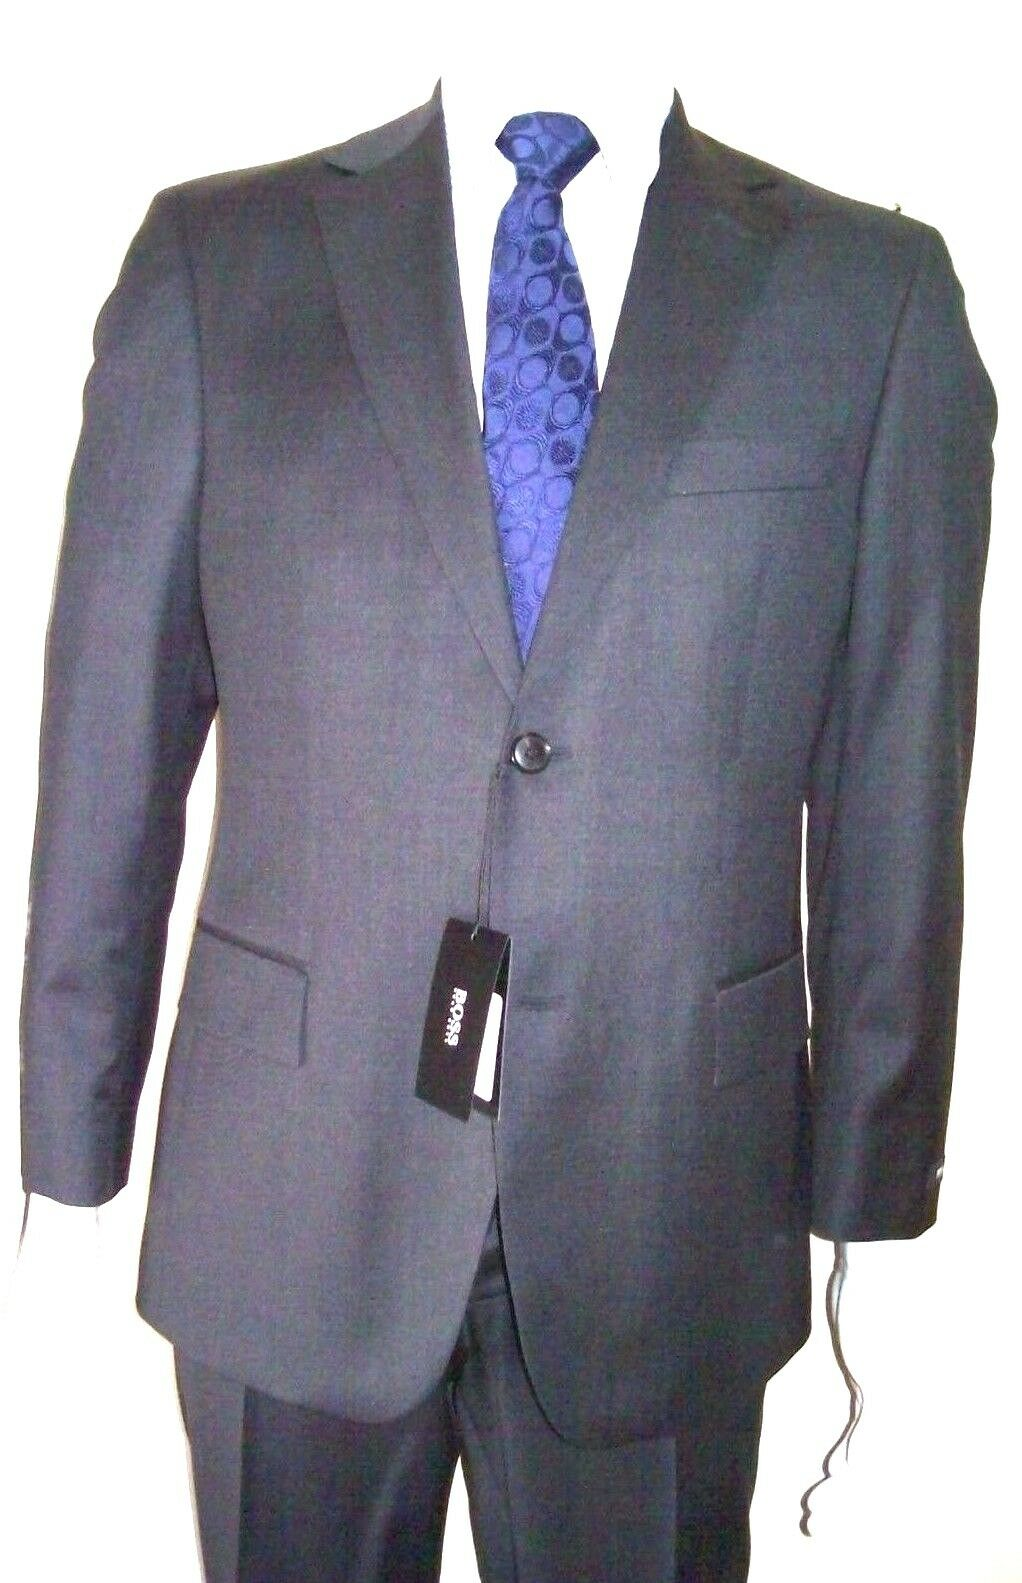 42L Suit Sup 100's Charcoal grey Hugo Boss Made USA 100% virgin wool Org